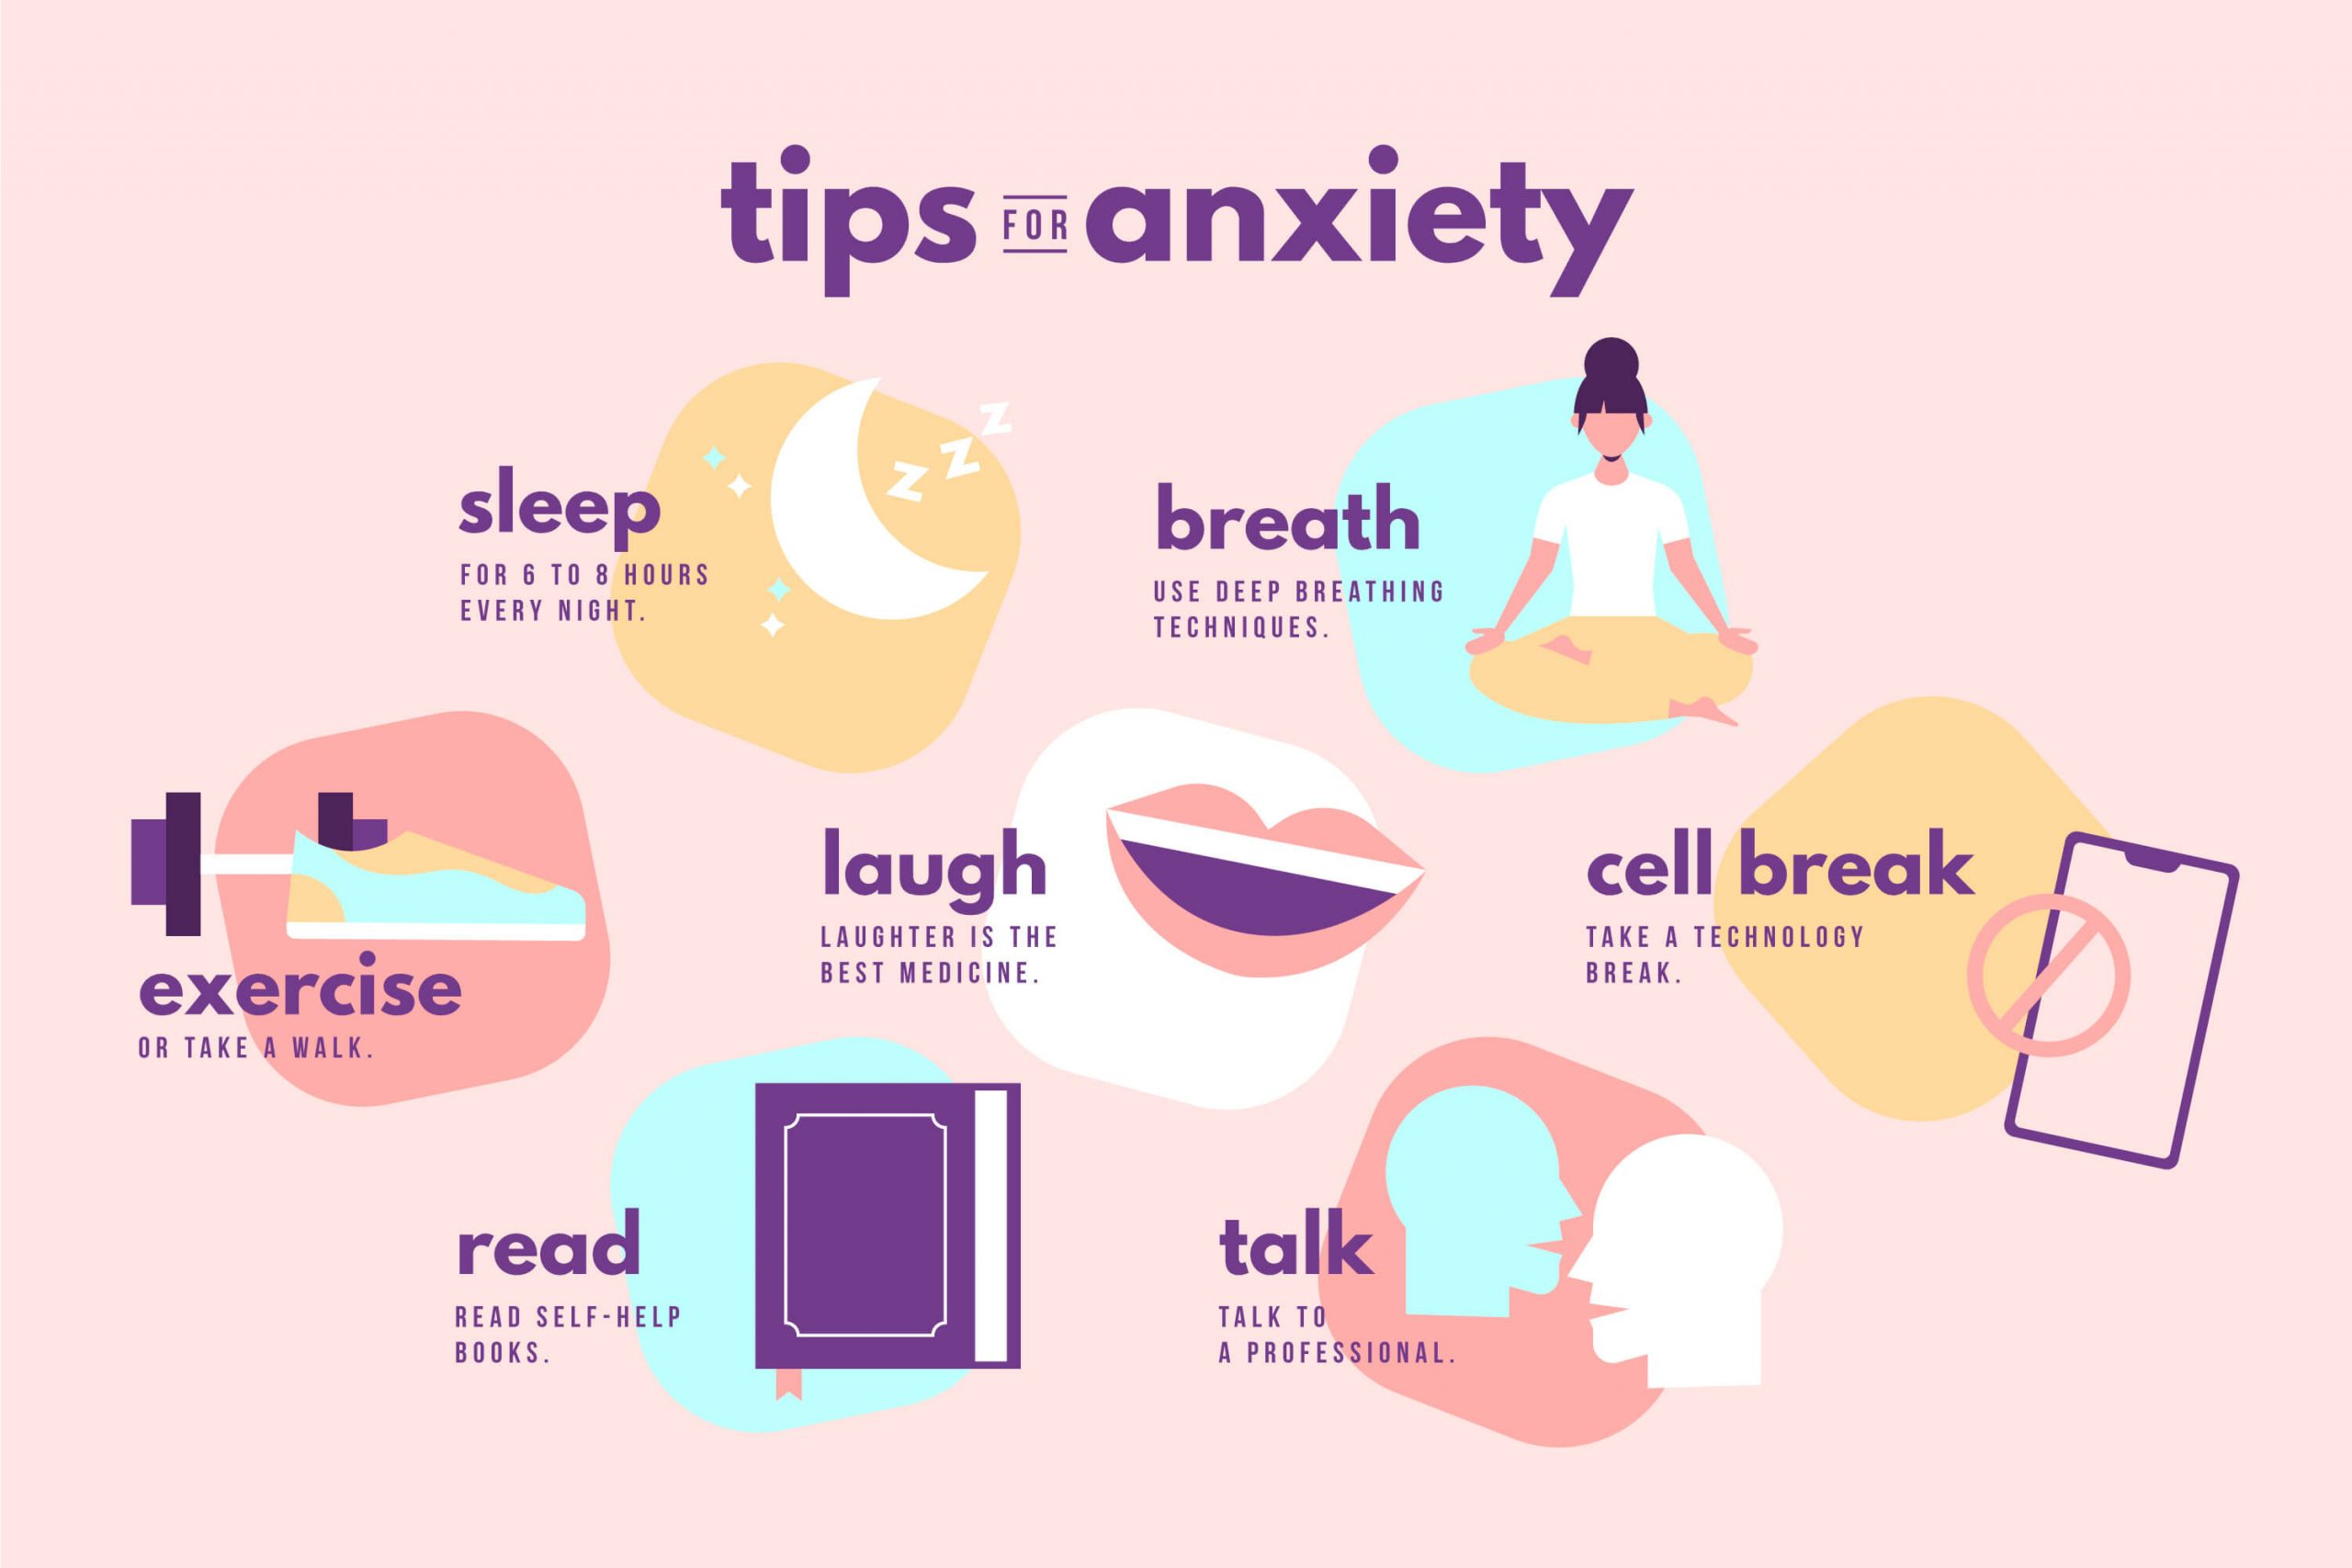 tips-to-manage-anxiety